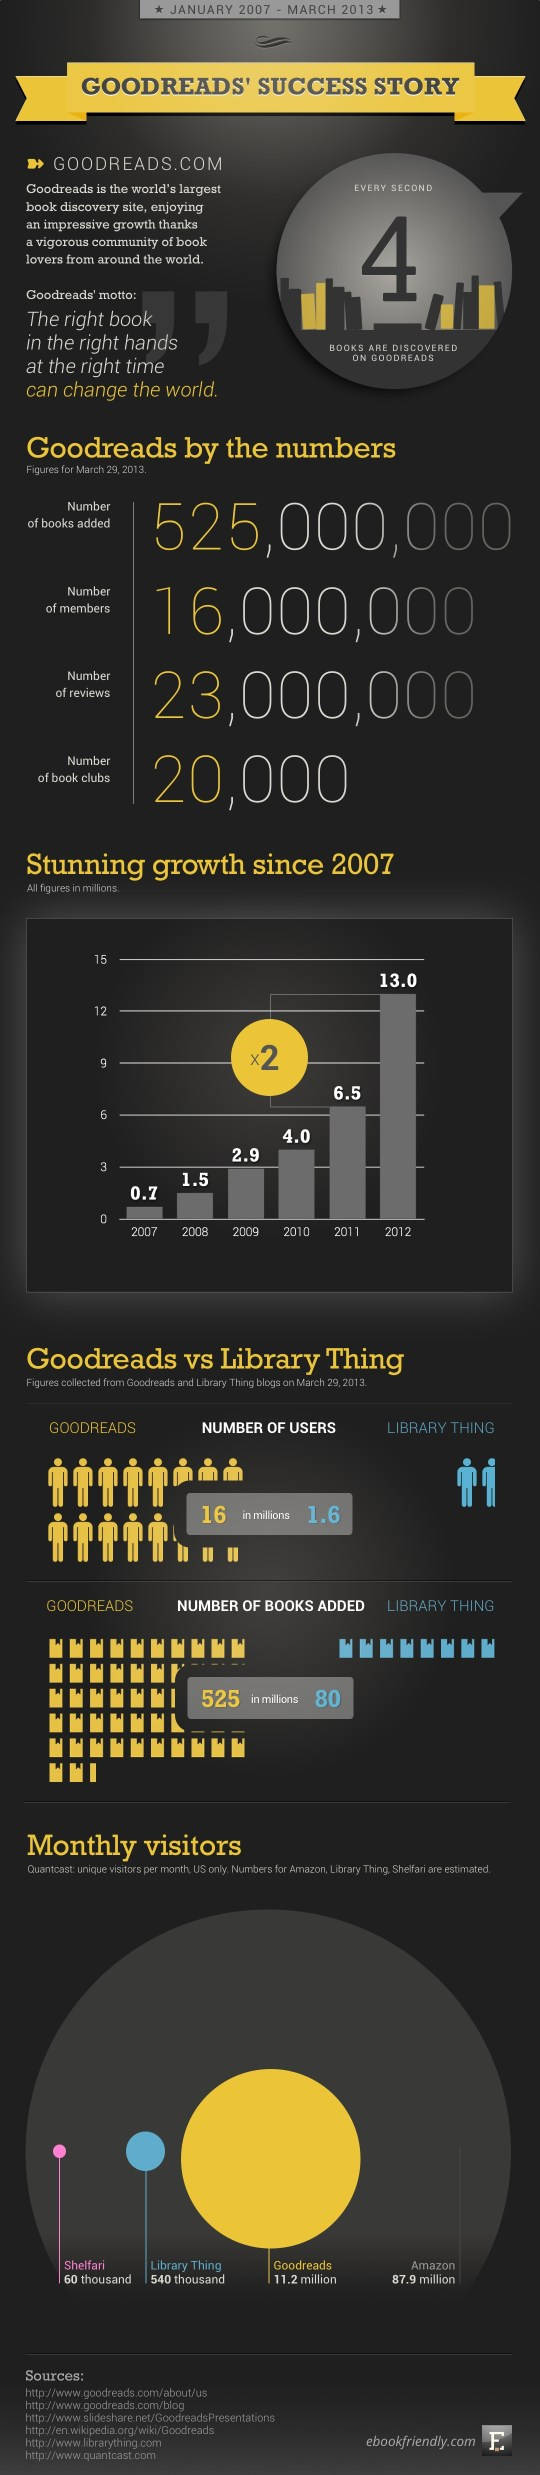 Goodreads' success story [infographic] | Ebook Friendly